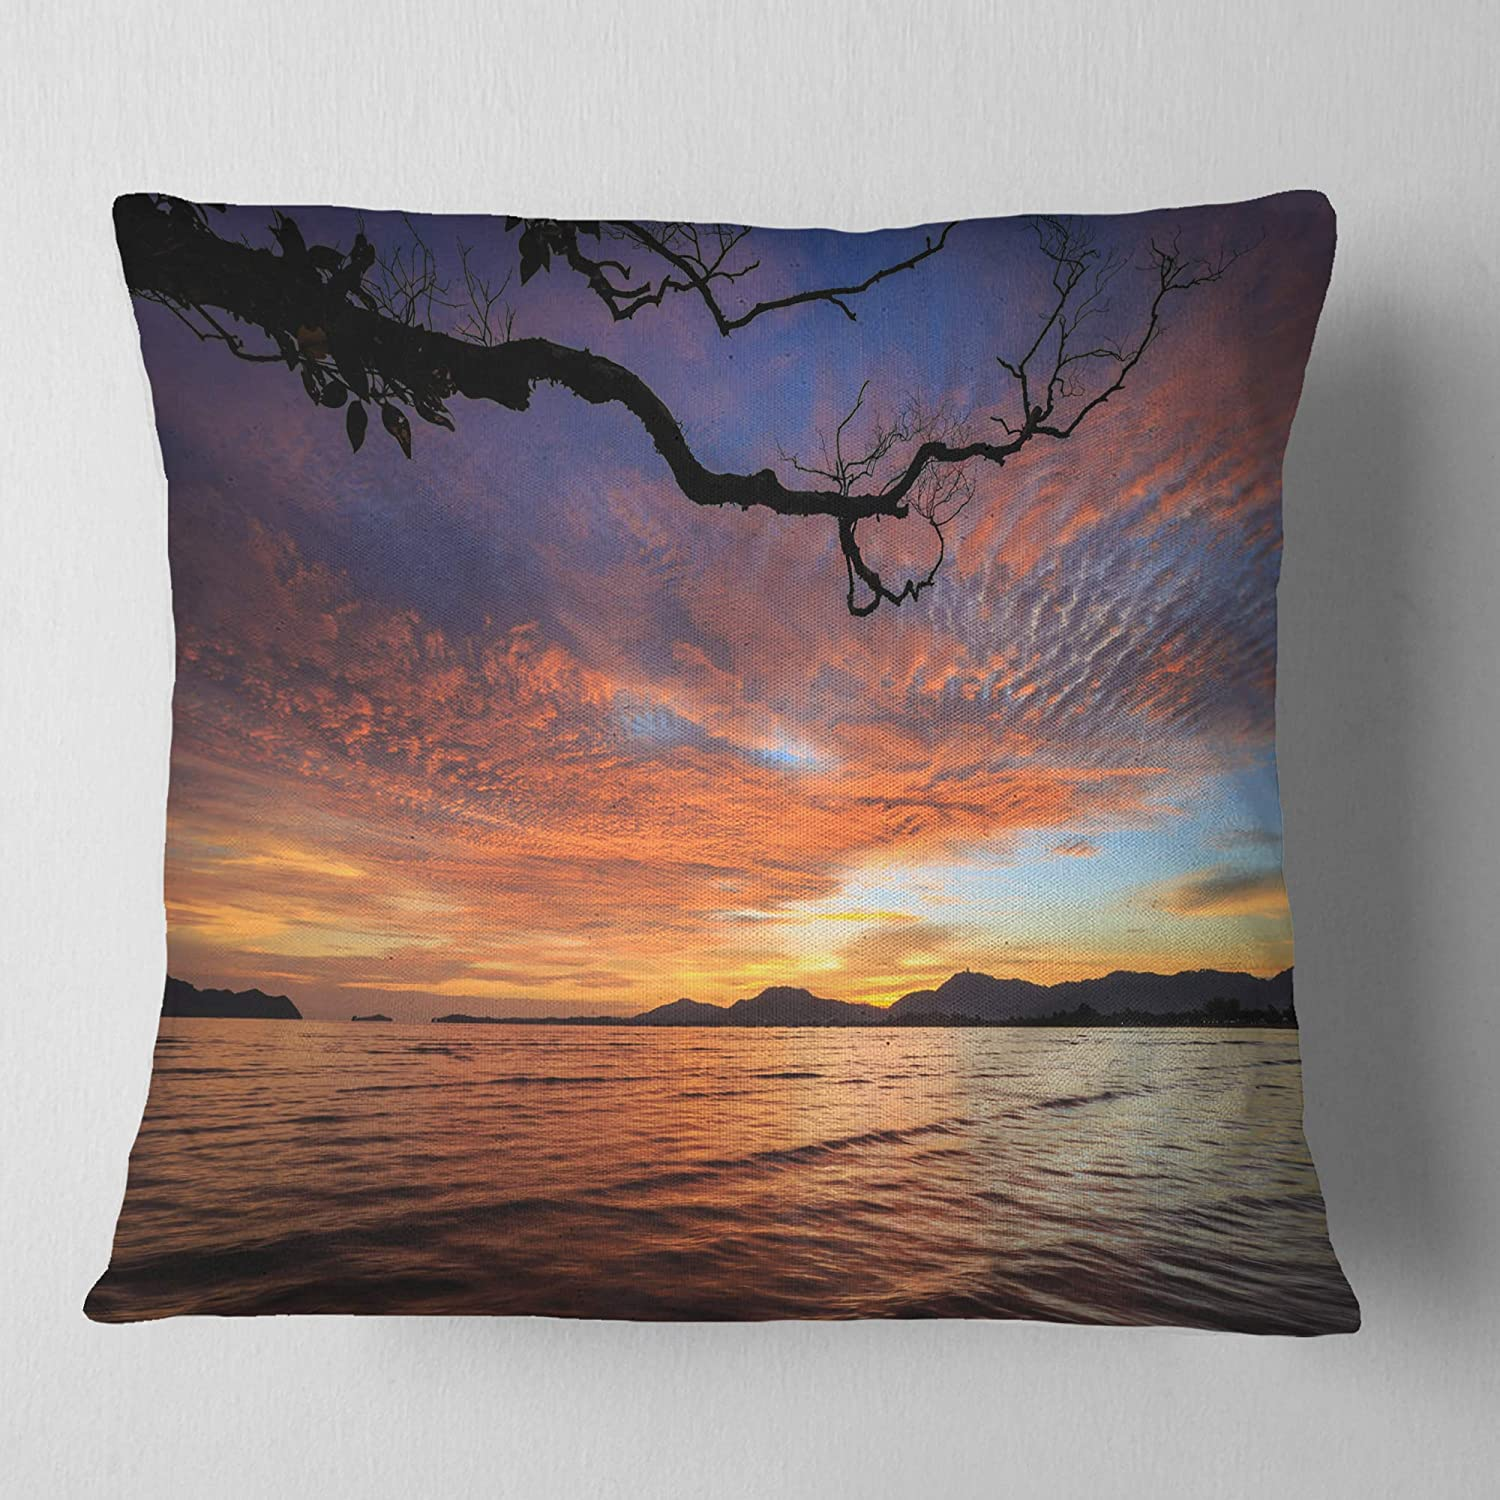 Insert Printed On Both Side x 26 in Sofa Throw Pillow 26 in Designart CU14701-26-26 Beautiful Sunset Beach in Phuket Seashore Cushion Cover for Living Room in